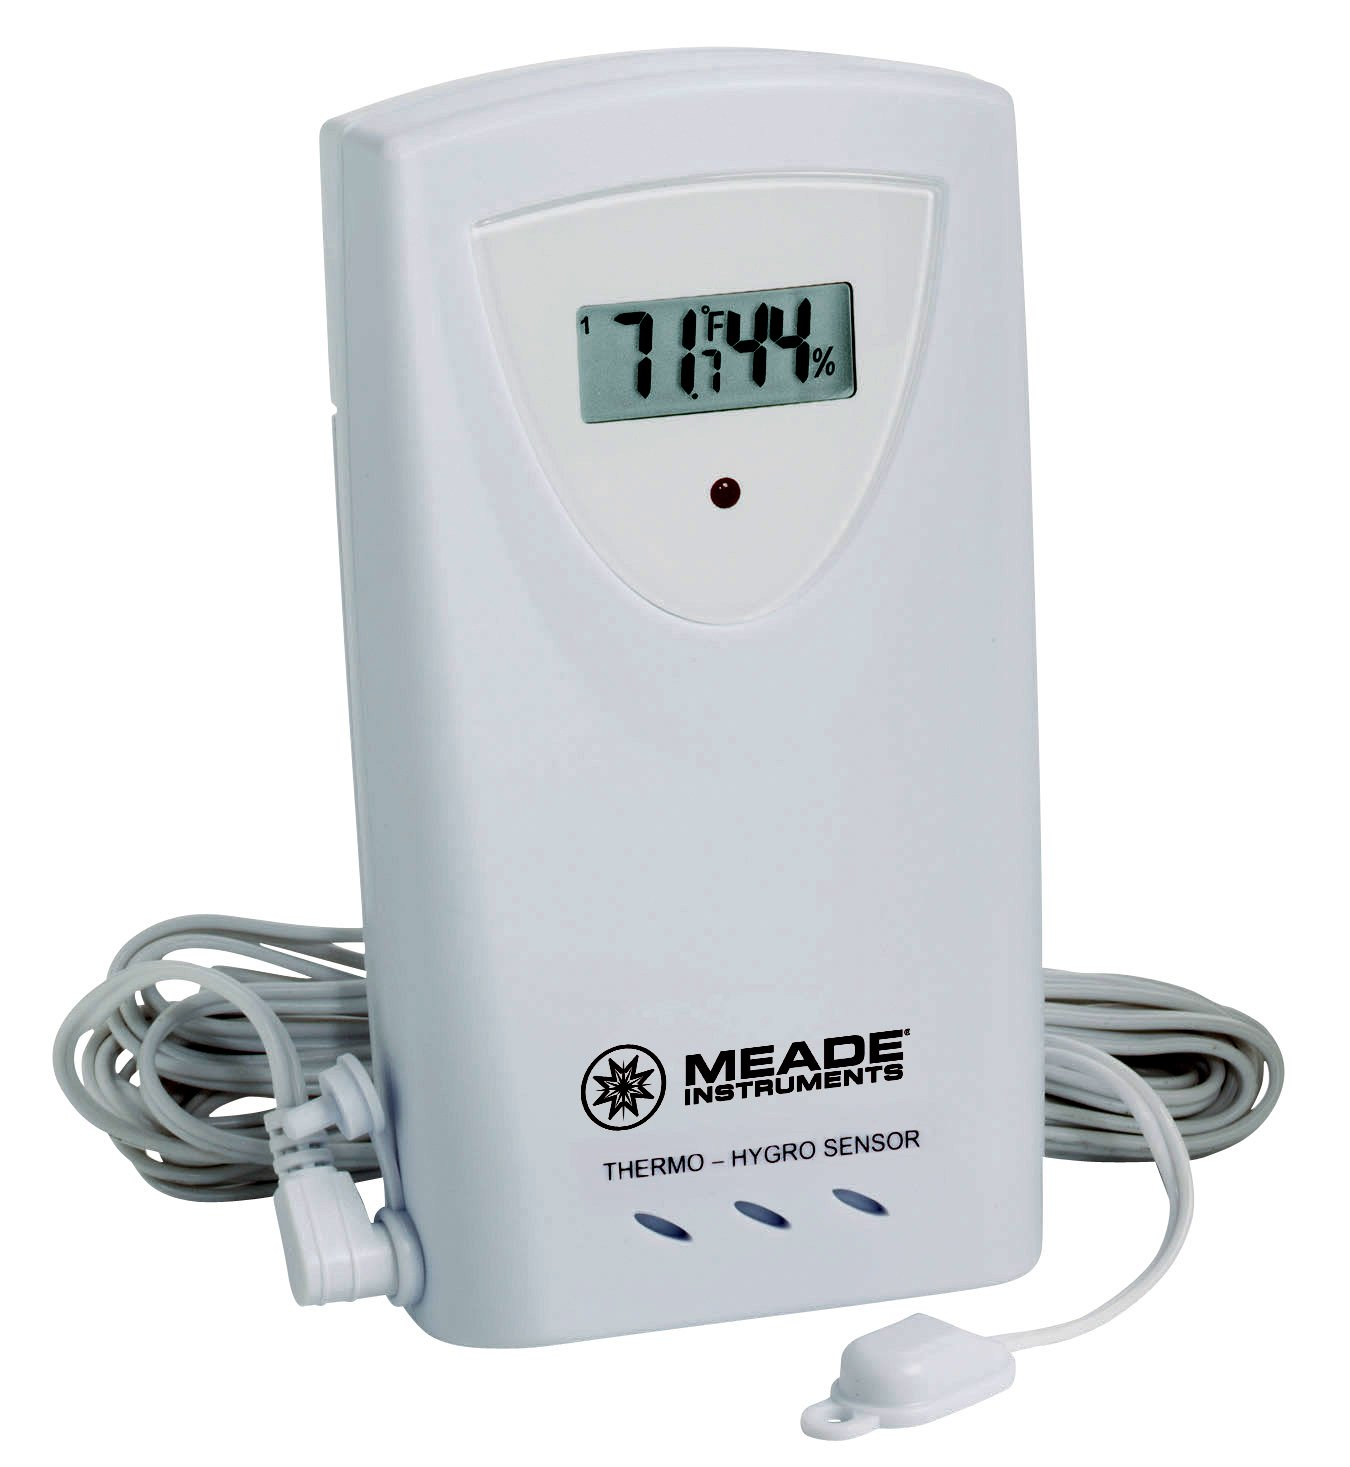 Meade Instruments TS33F-M Temperature and Humidity Sensor with Probe, White